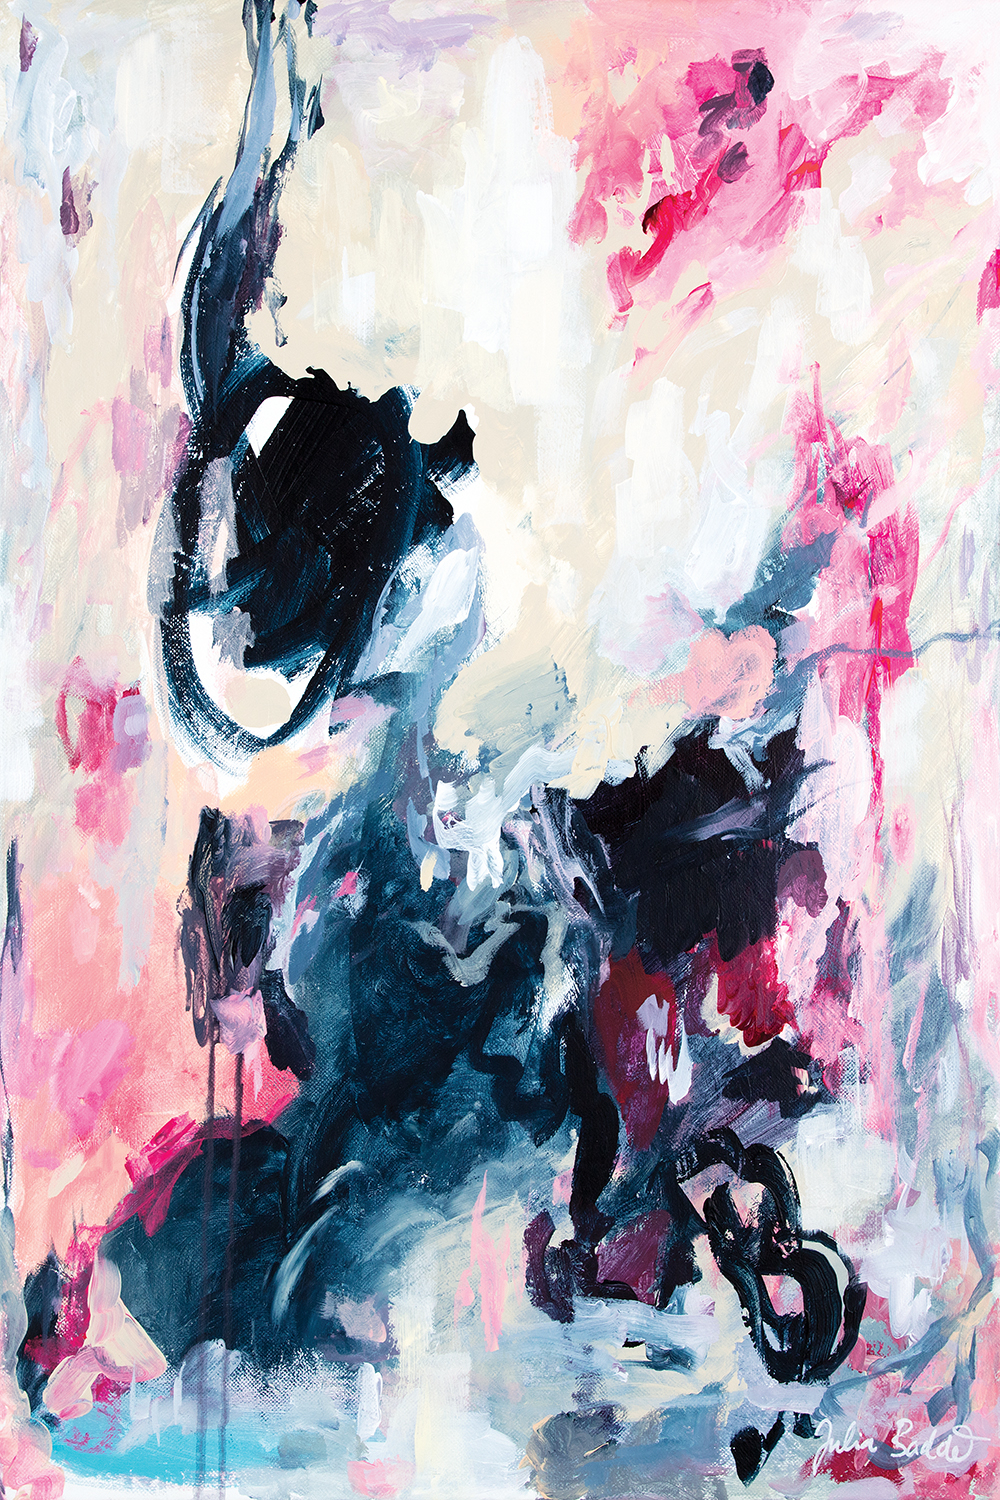 Abstract image of colors like dark teal, black, light pink, light blue, gray, beige and white